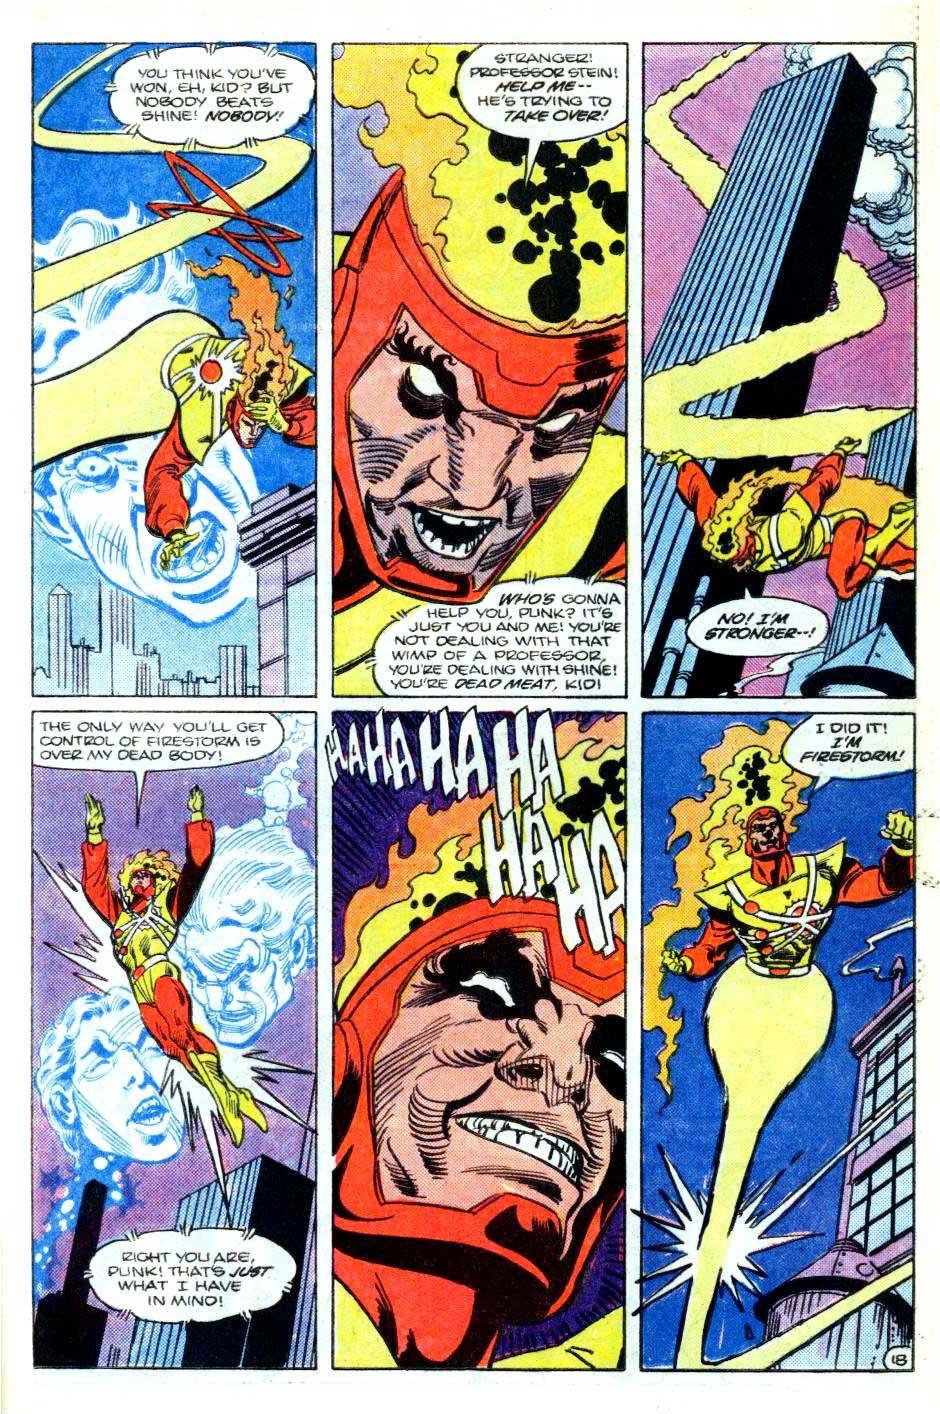 Fury of Firestorm #32 by R.J.M. Lofficier and Alan Kupperberg